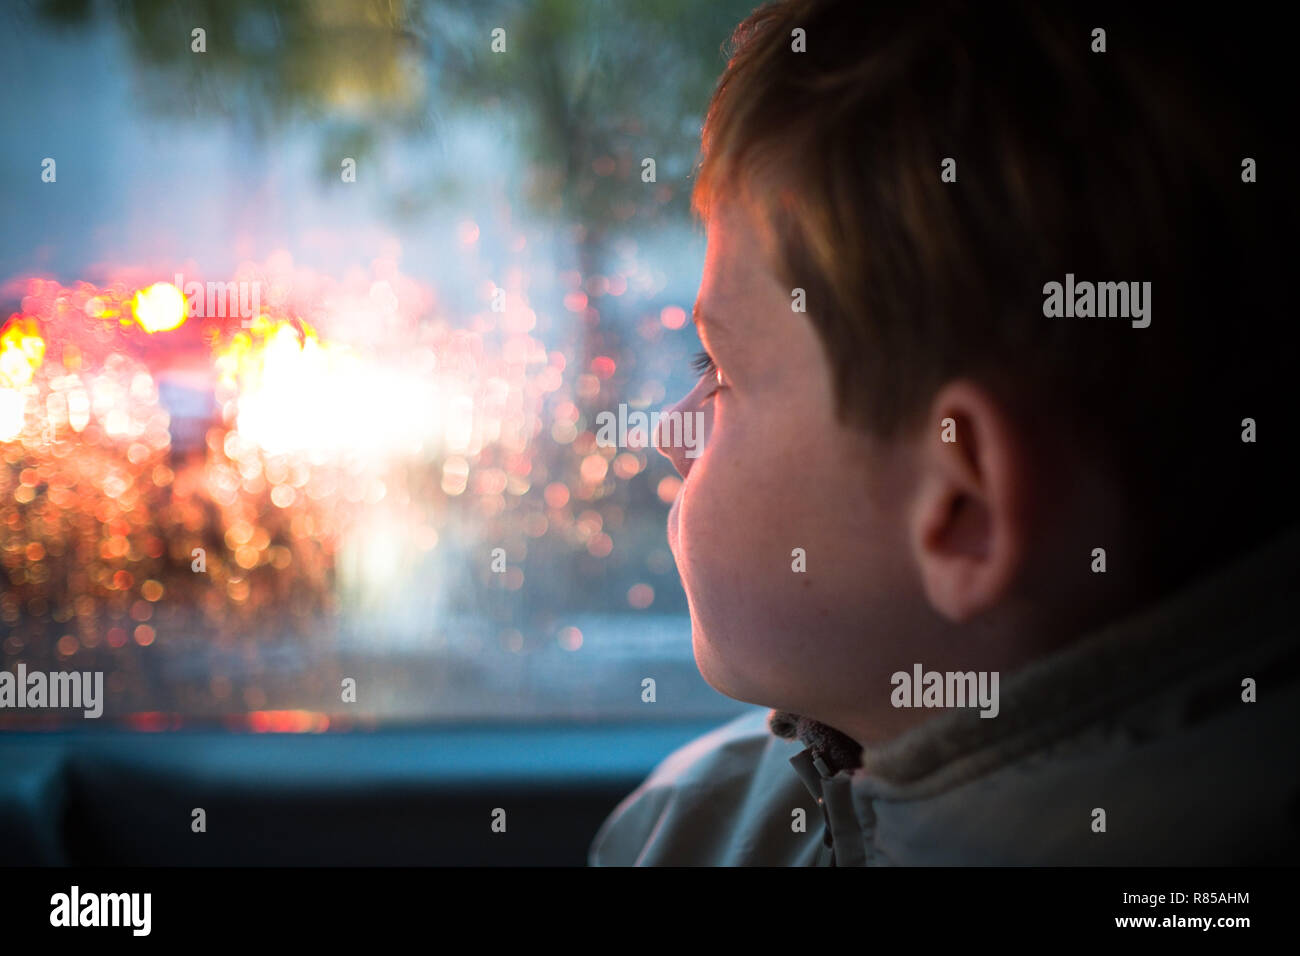 close up side profile of 11 year old boy inside car on way to school looking out of car window  at a passing car in the rain - Stock Image